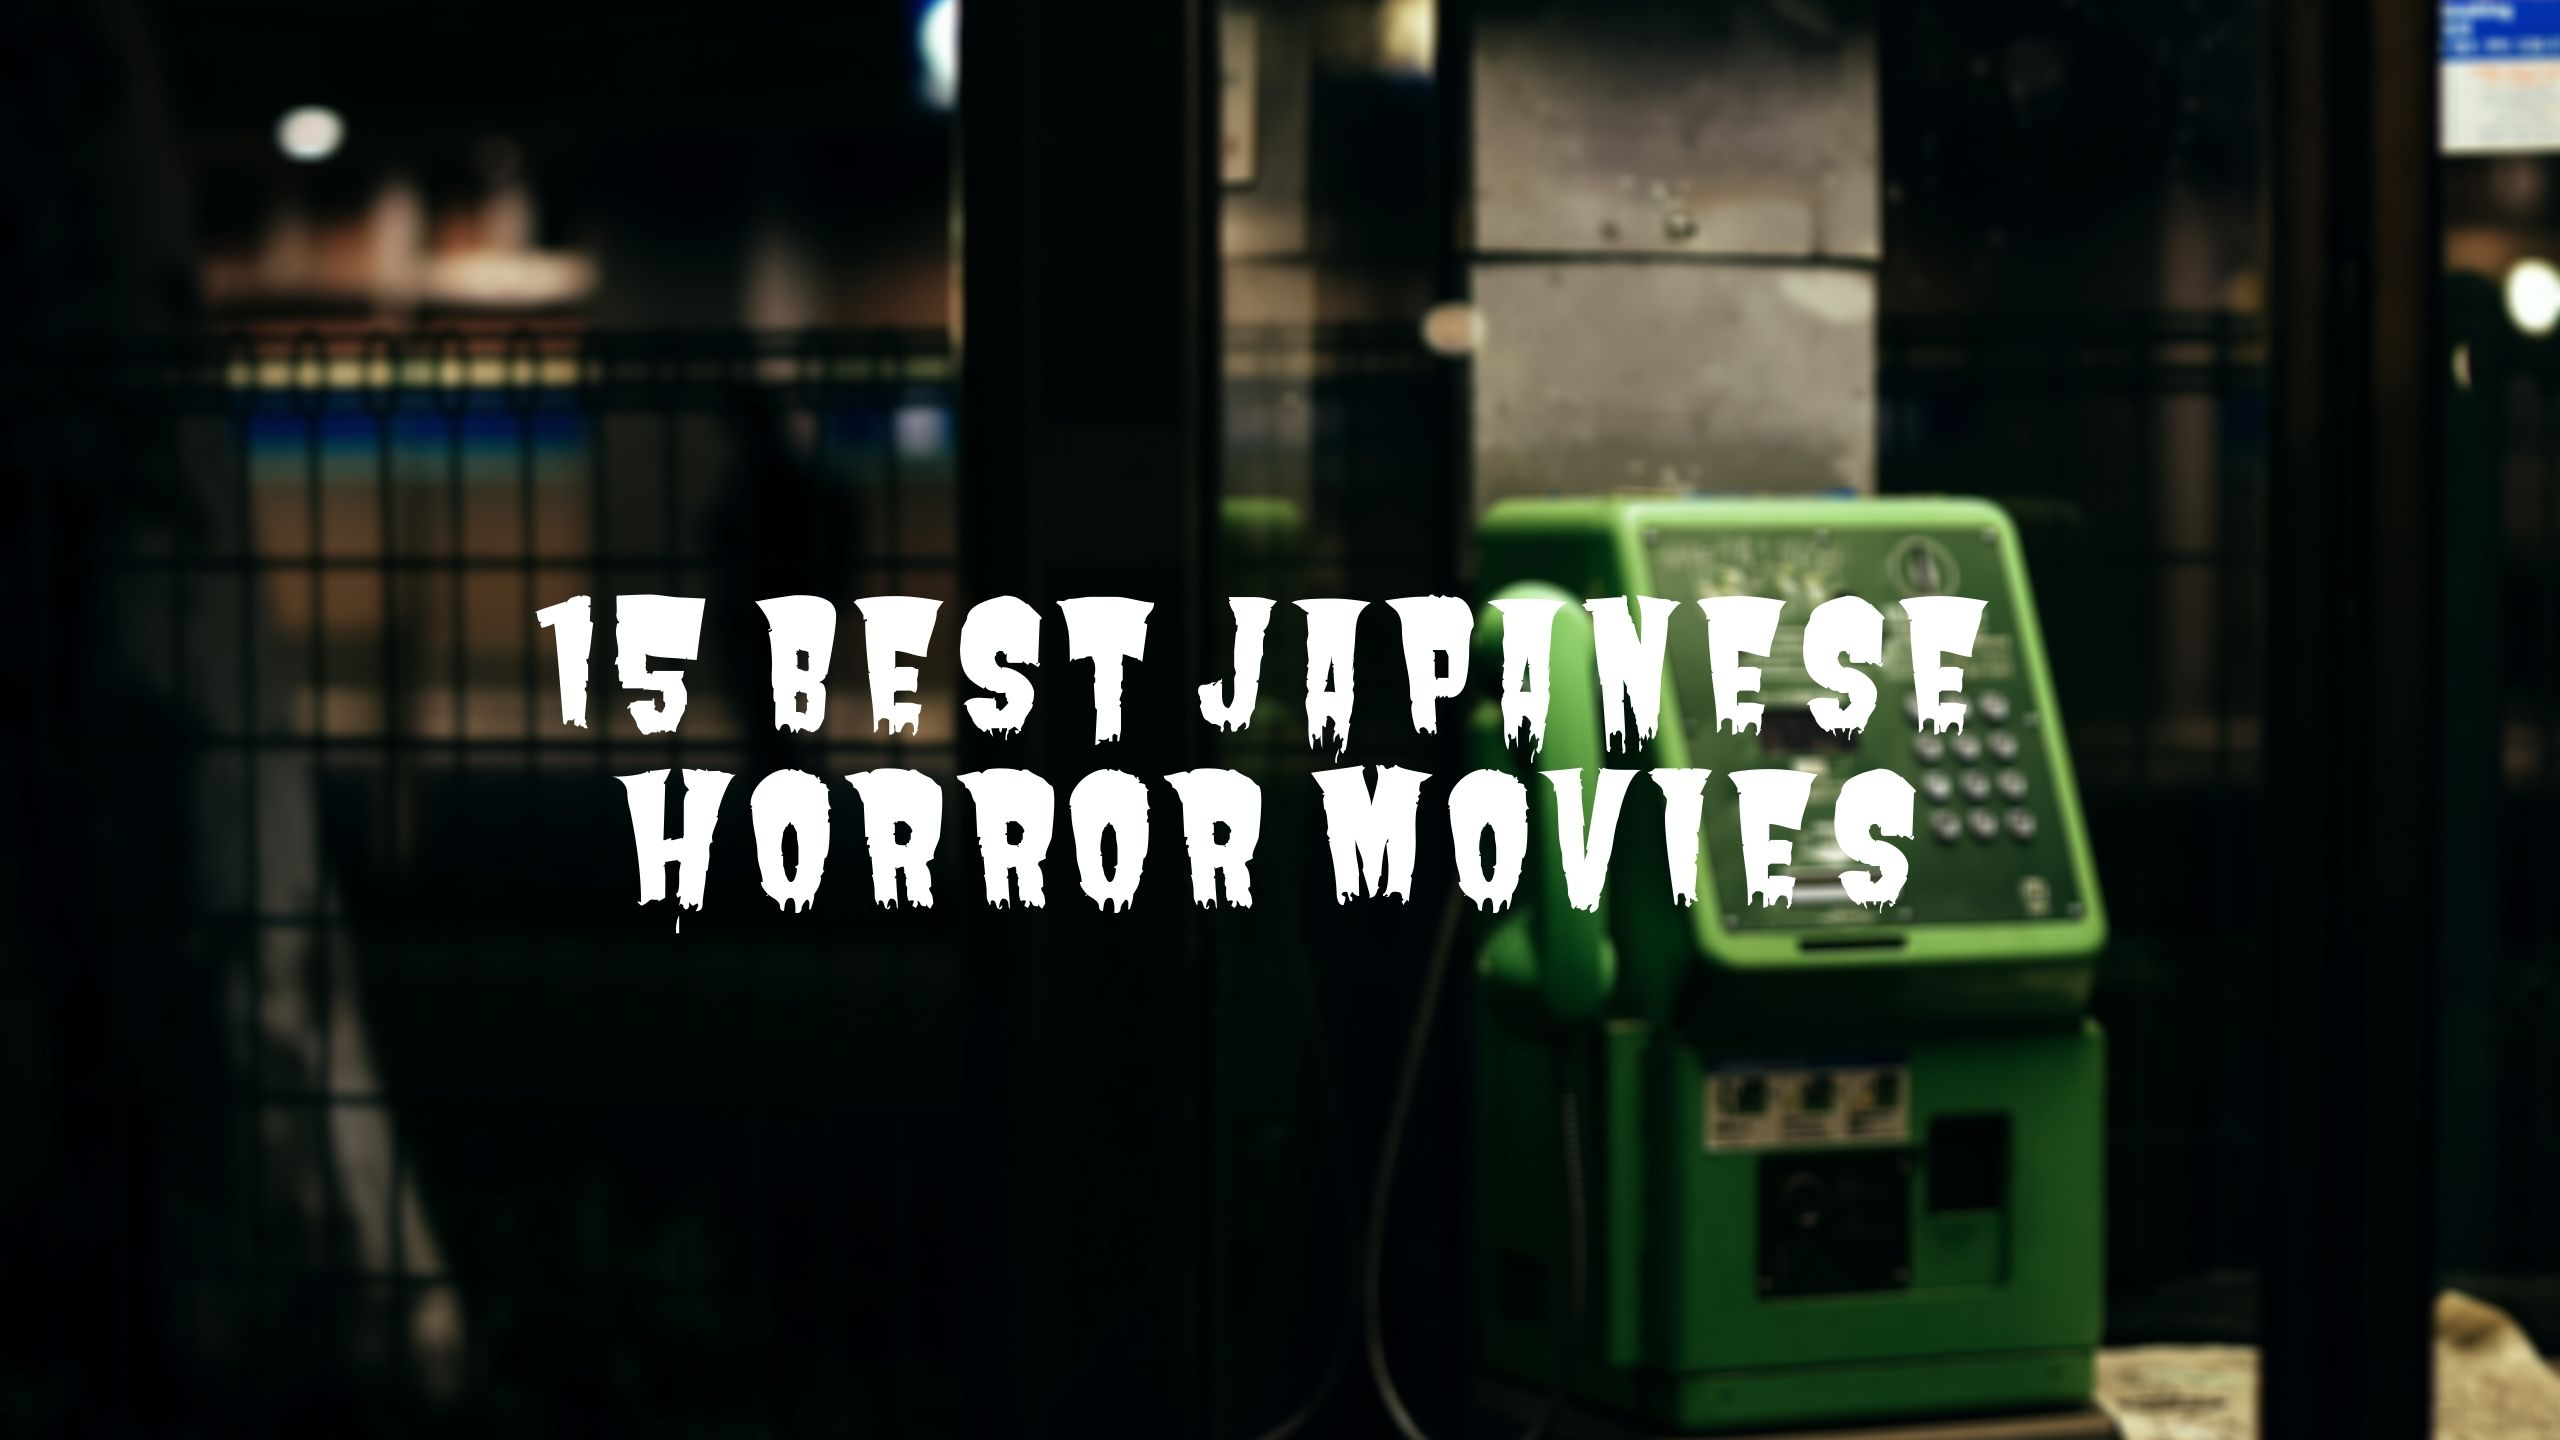 15 Best Japanese Horror Movies